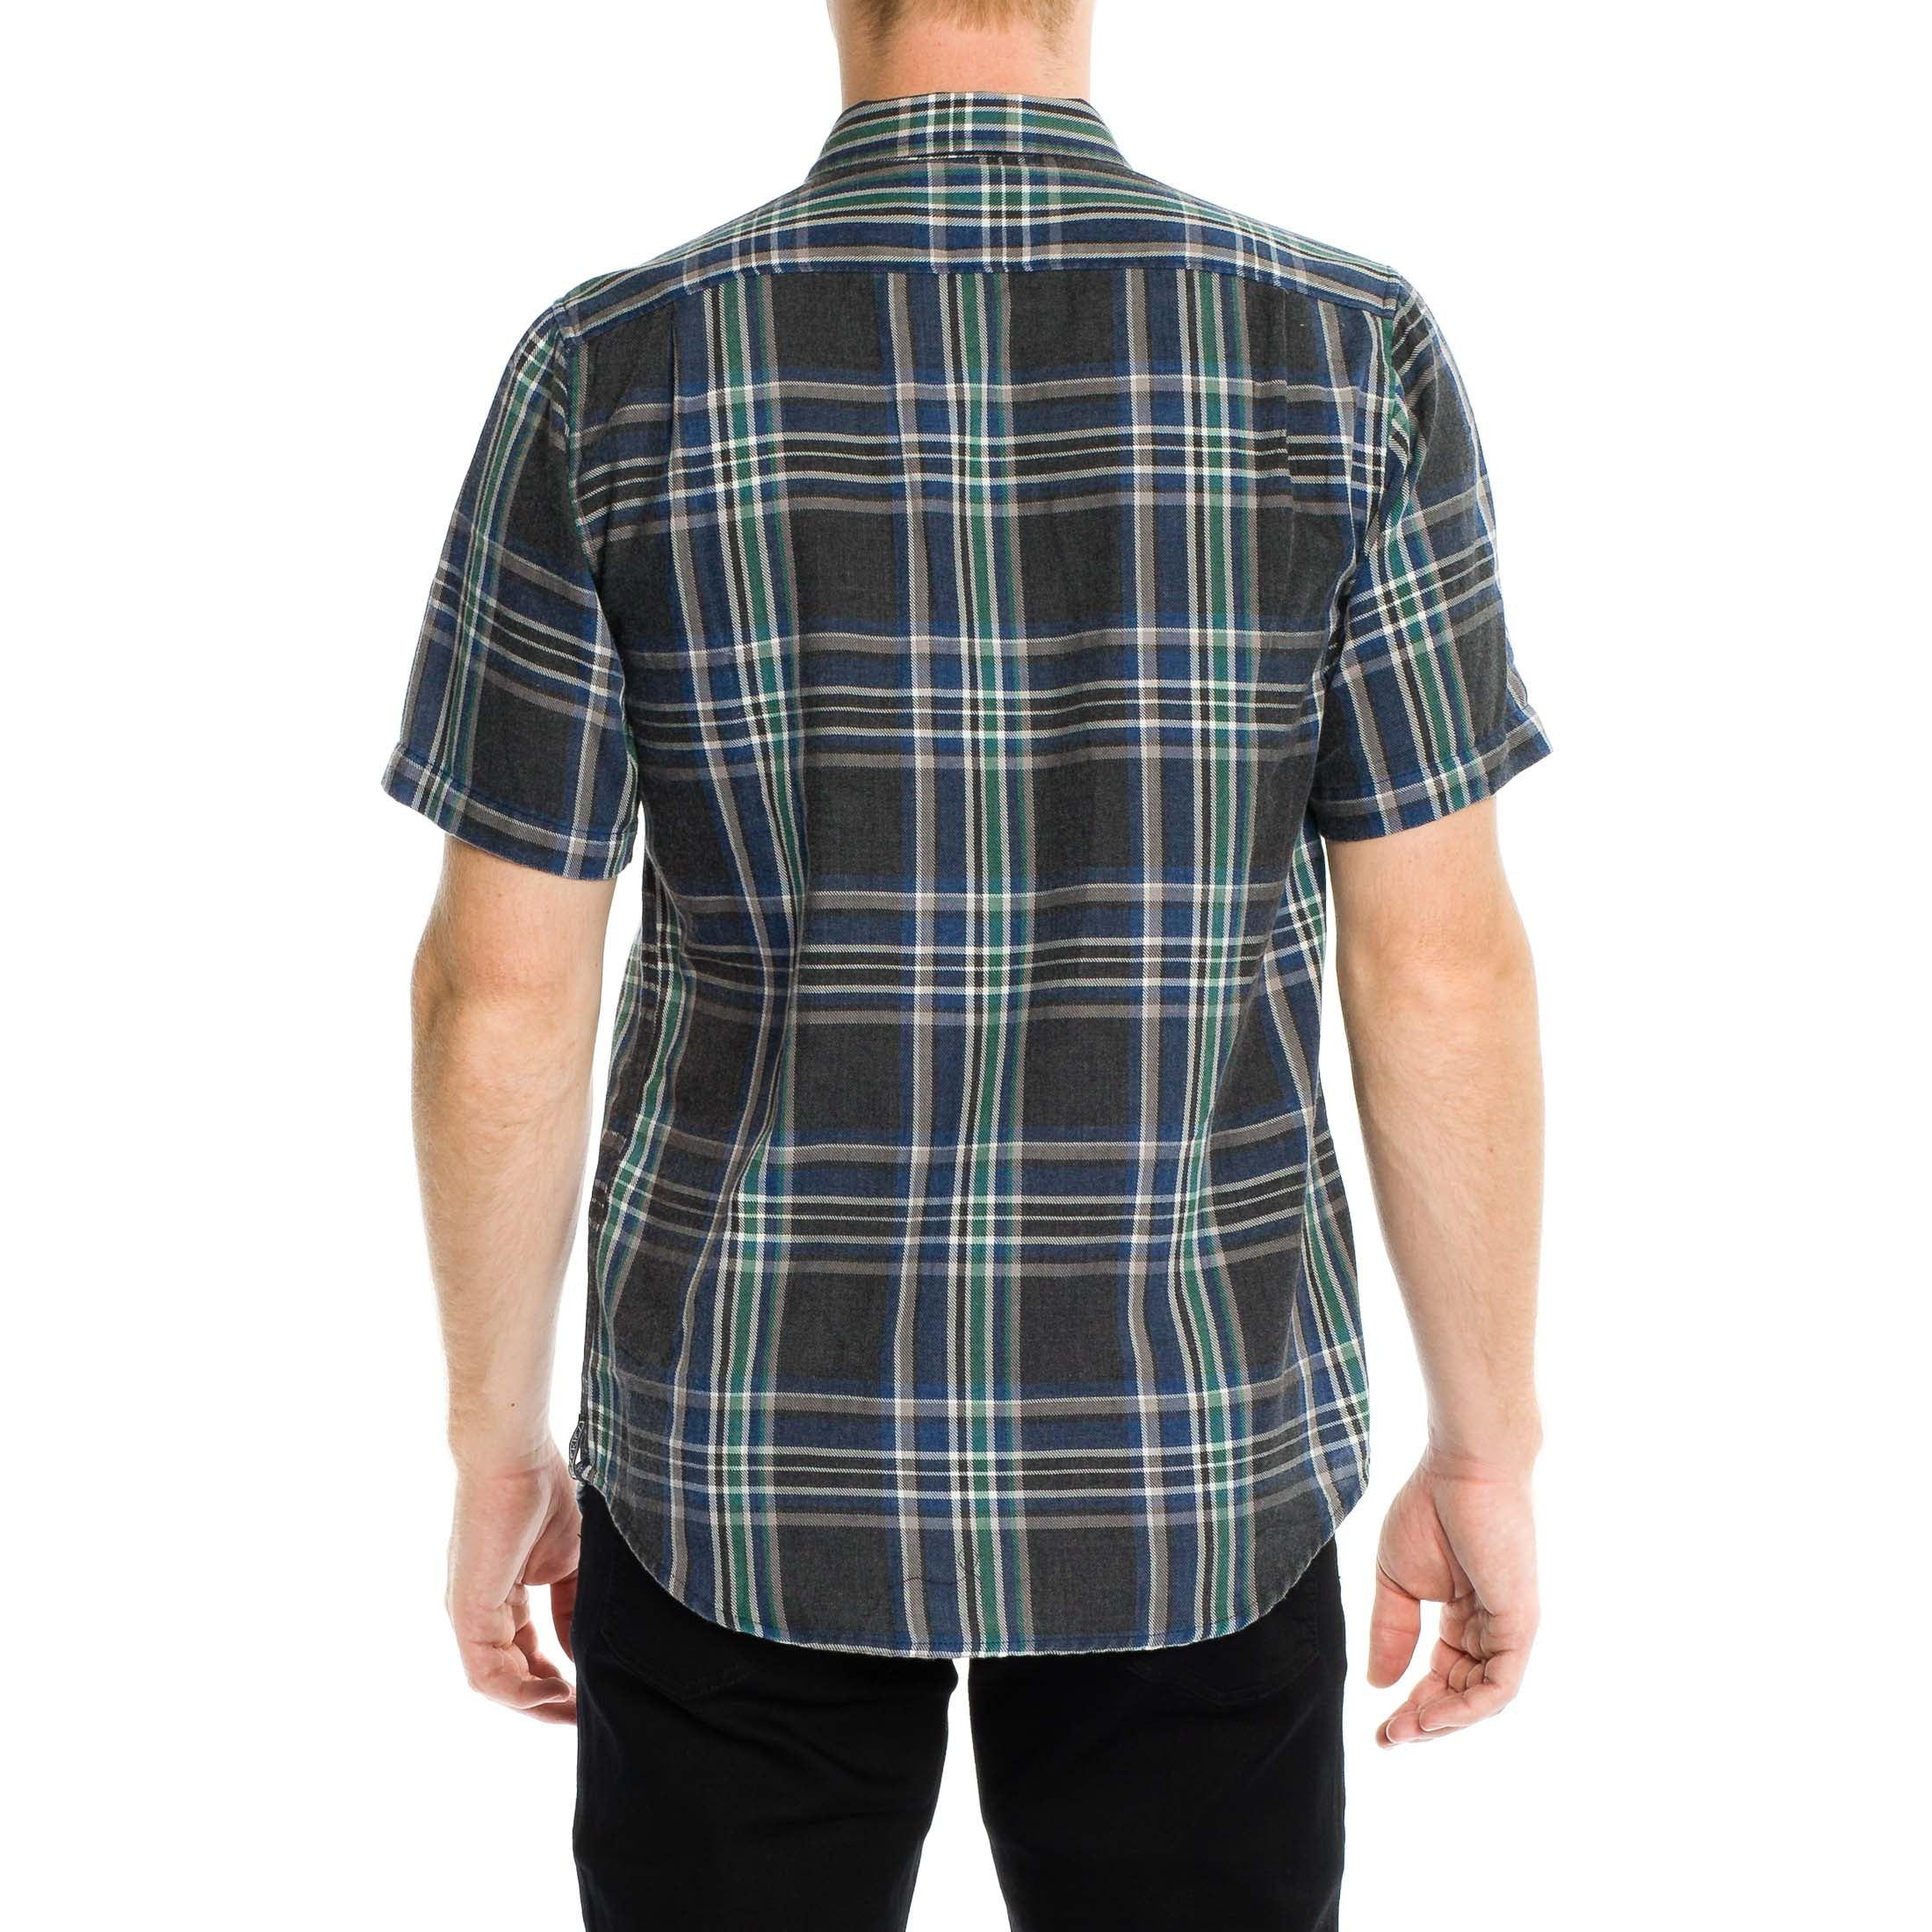 Soho Short Sleeve Shirt - Black - Ezekiel Clothing